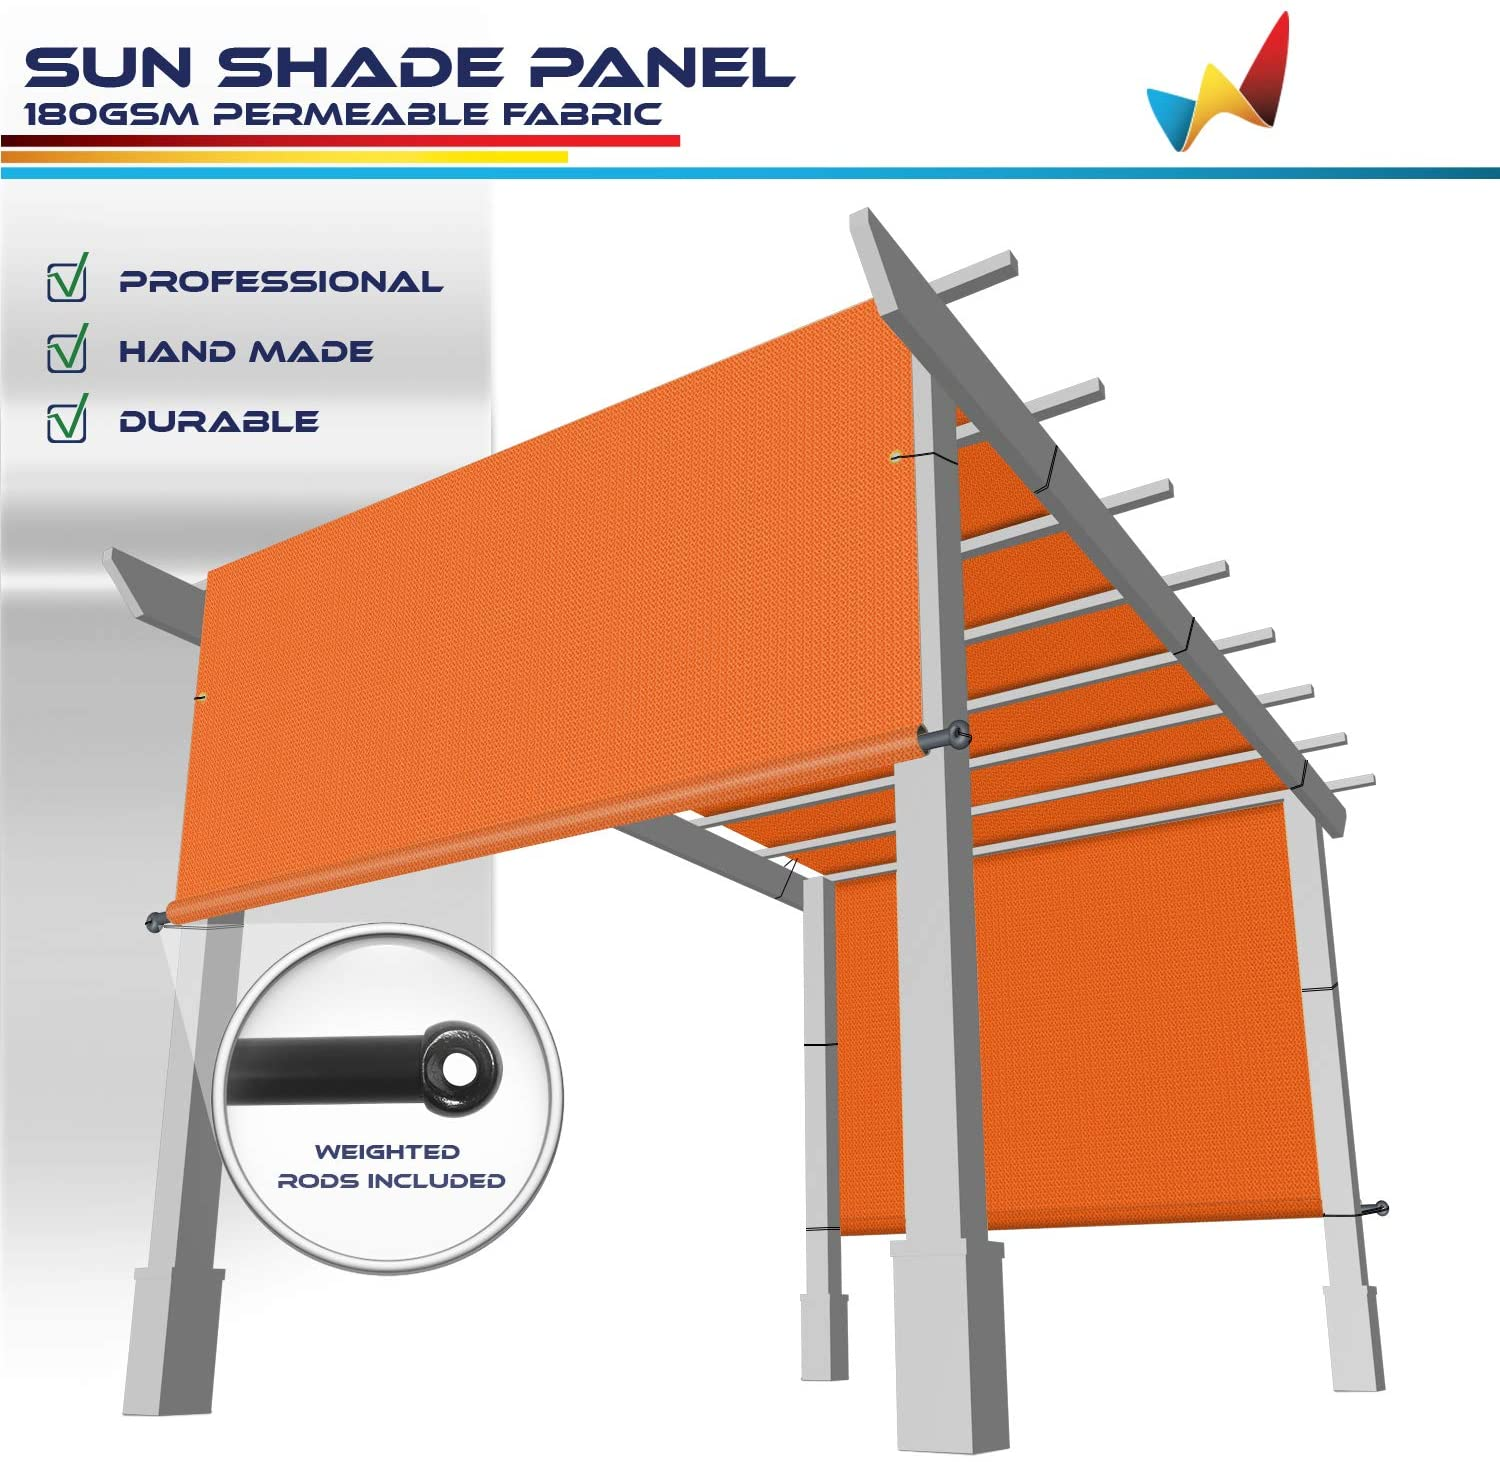 Windscreen4less 9'x16' Outdoor Pergola Replacement Shade Cover Canopy for Patio Privacy Shade Screen Panel with Grommets on 2 Sides Includes Weighted Rods Breathable UV Block Orange